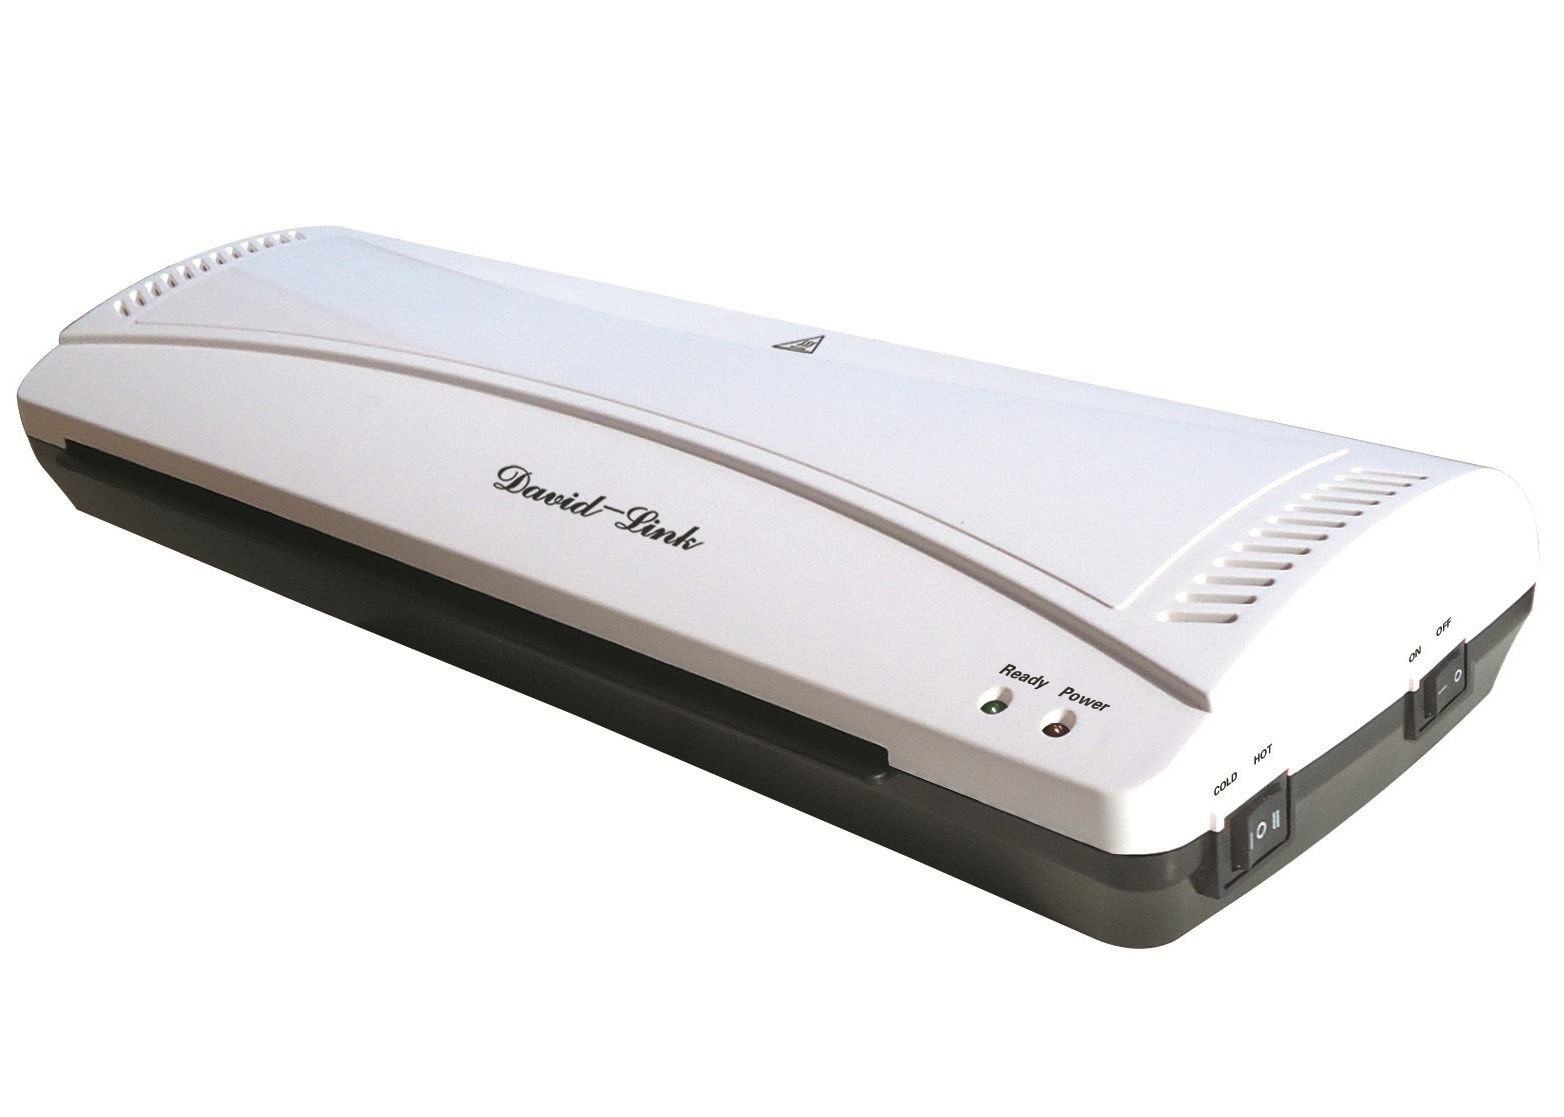 13-inch David-Link DL-360N Laminator with Heat-Guard Technology